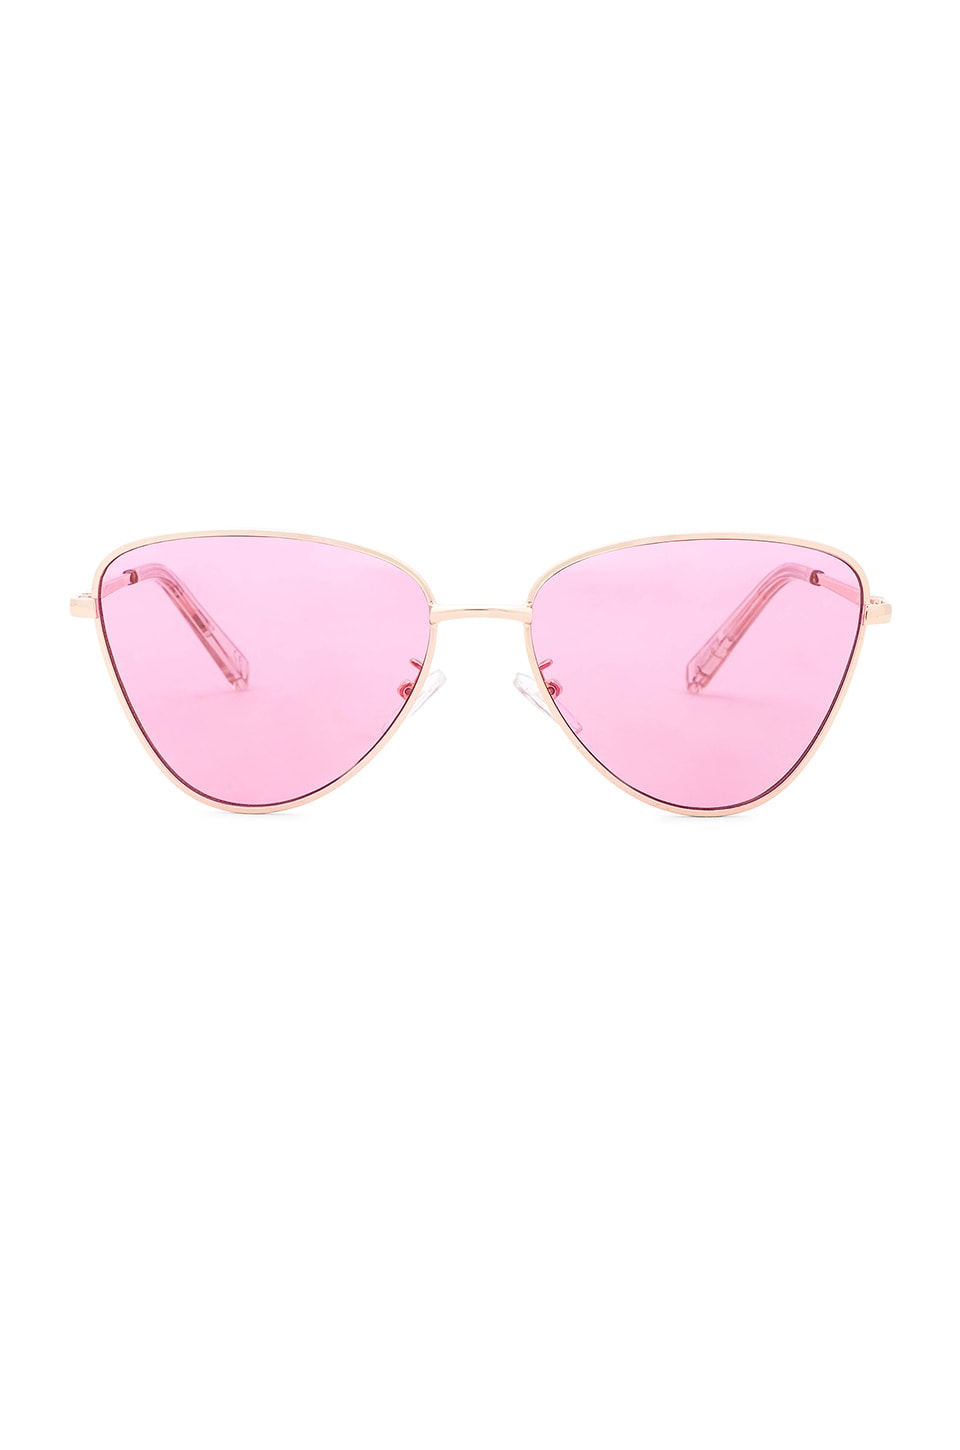 Le Specs x Revolve Echo in Bright Gold & Pink Tint